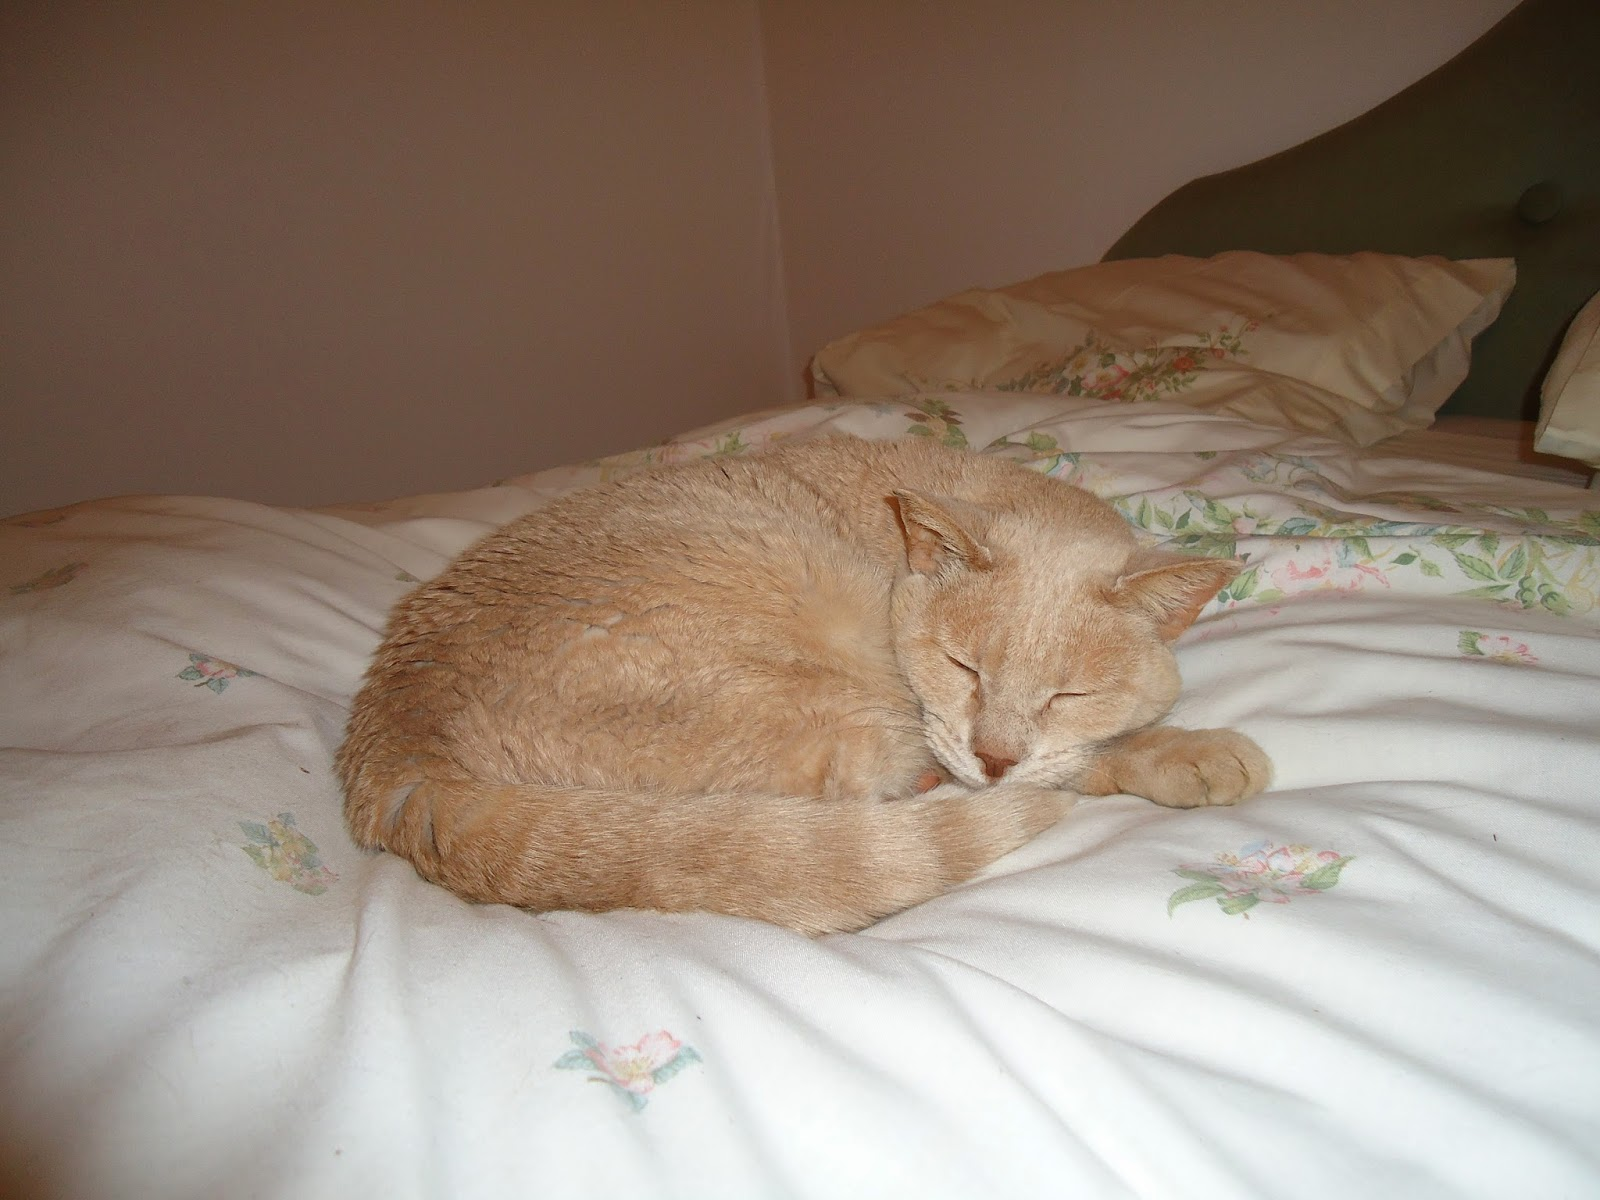 champagne burmese cat curled up on a bed